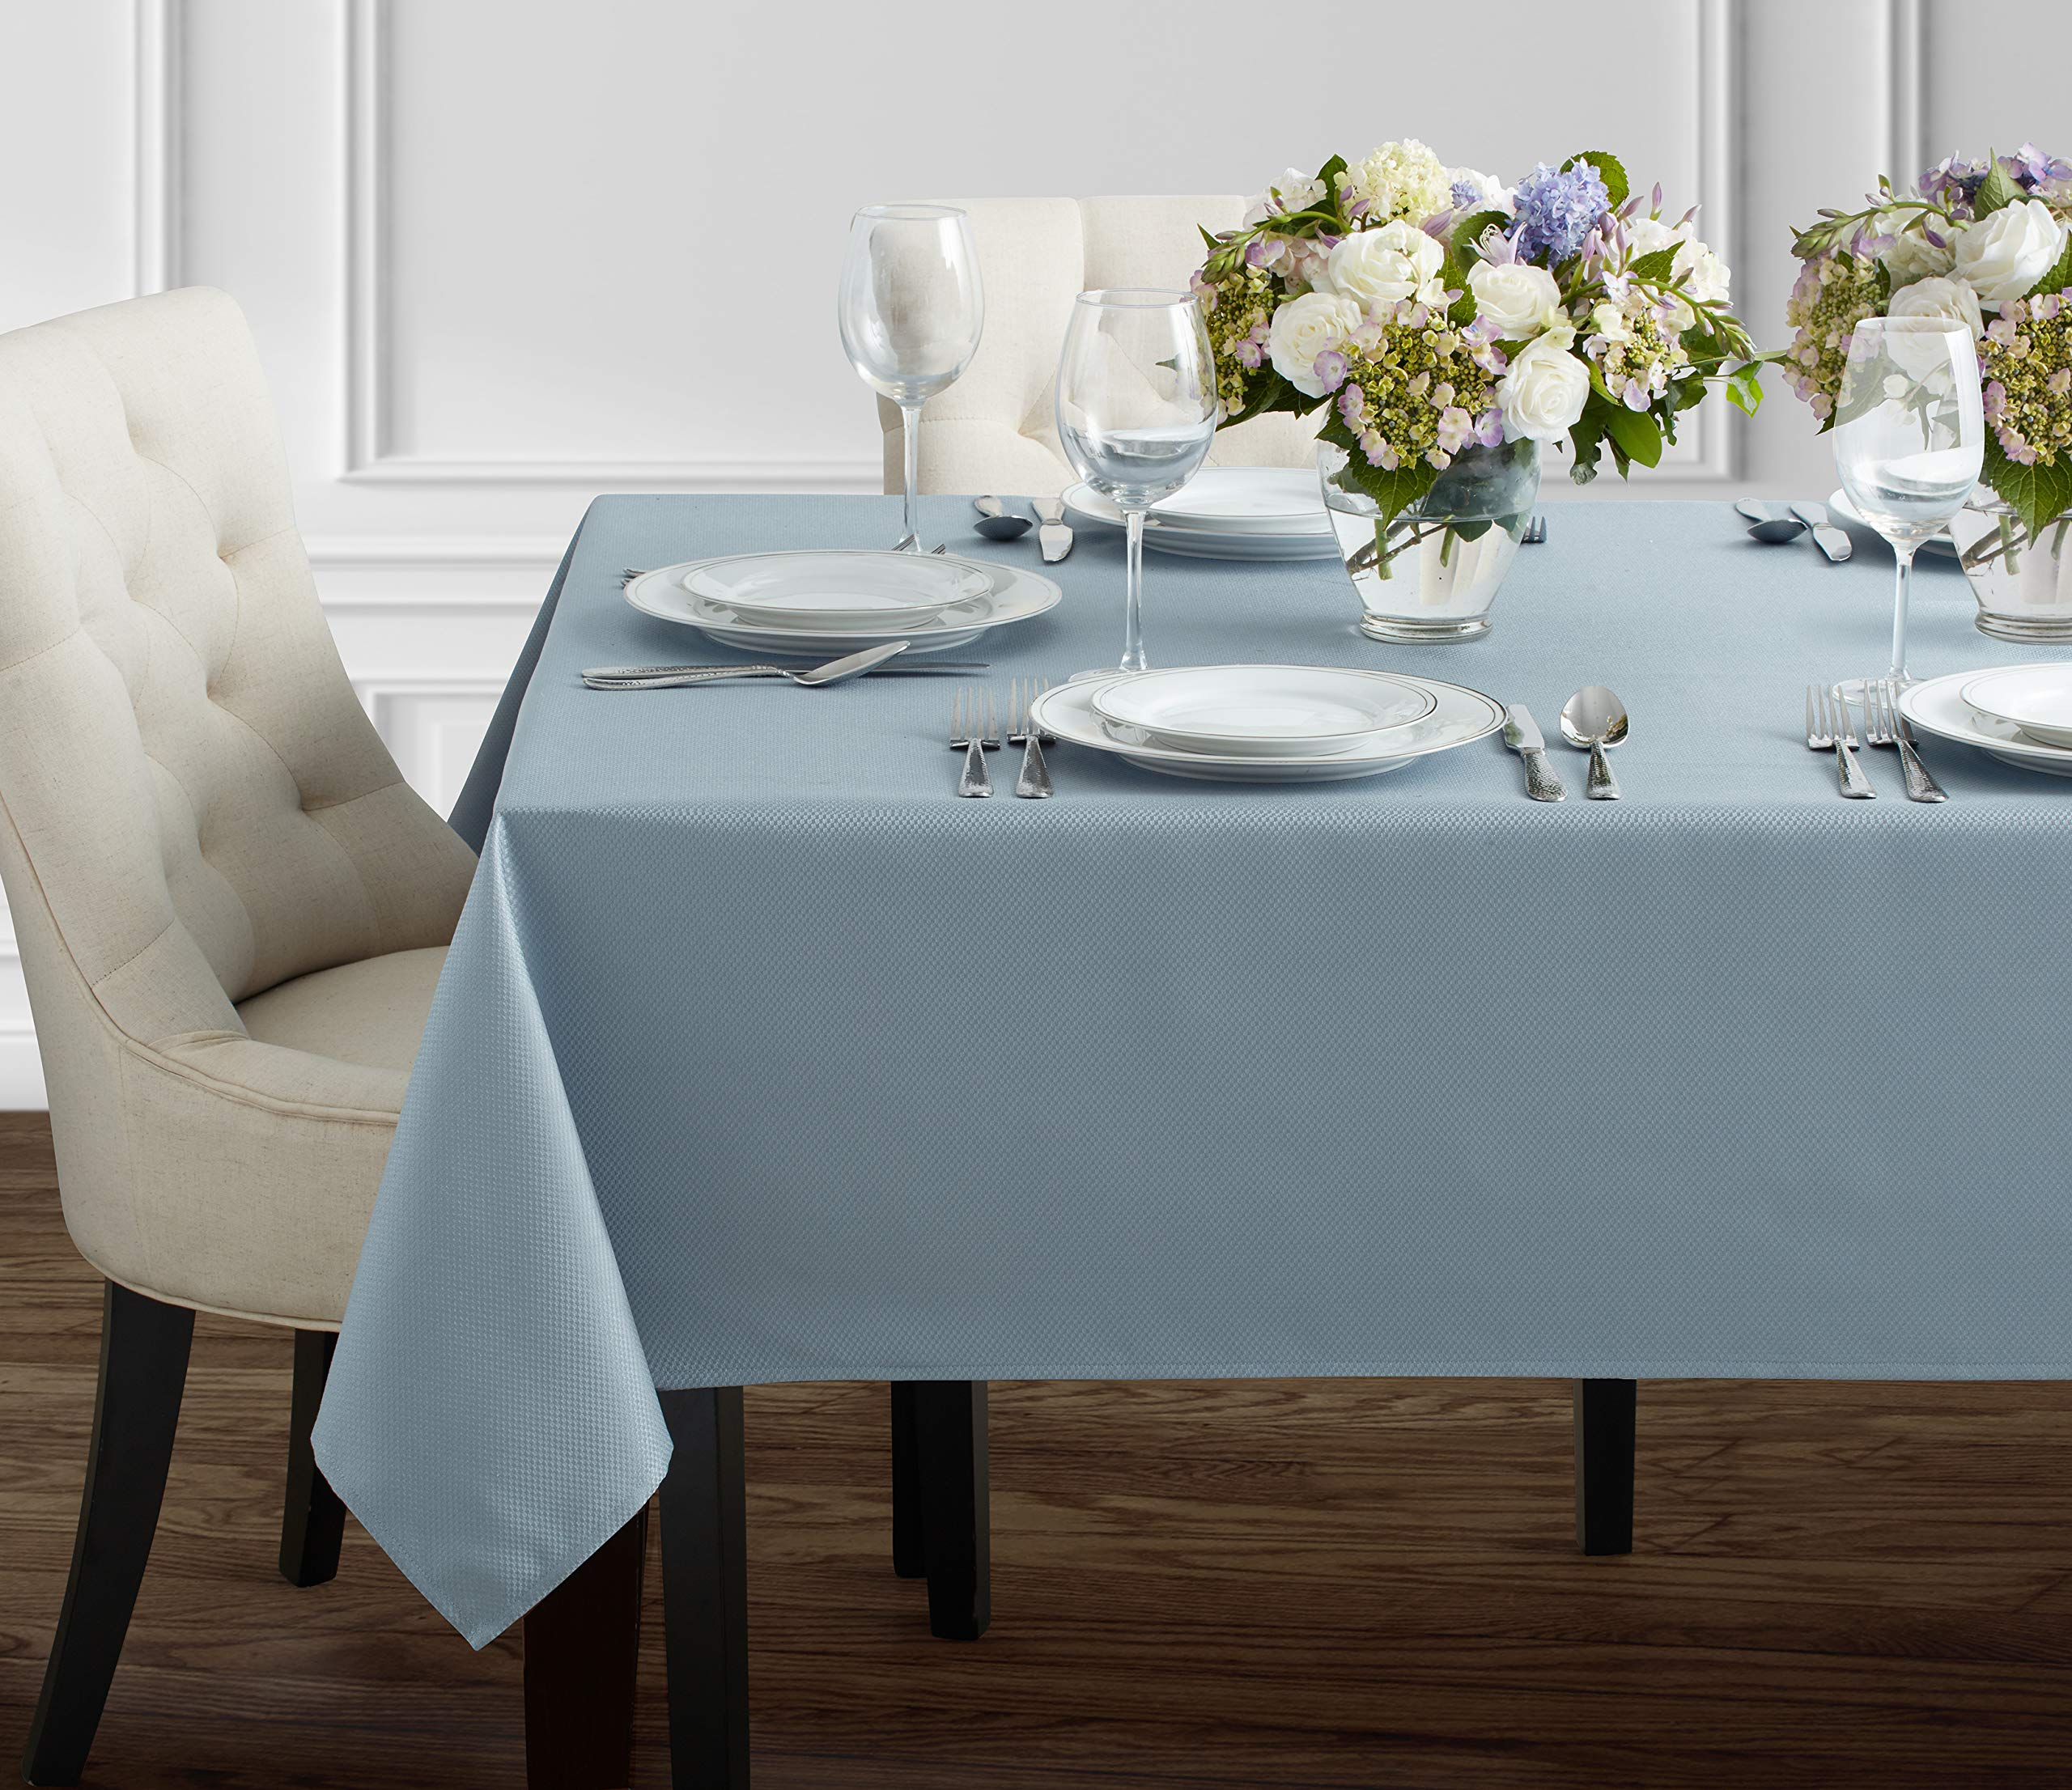 """Benson Mills Beauvalle Extra Wide Spillproof Tablecloth (68"""" X 84"""" Rectangular, Wedgewood Blue) - Treated polyester fabric tablecloth, extra wide. All liquids, even wine, bead up can be quickly wiped clean with a sponge or napkin Contemporary pattern Tablecloth, available in additional colors and sizes - tablecloths, kitchen-dining-room-table-linens, kitchen-dining-room - 91Fw1PVaVkL -"""